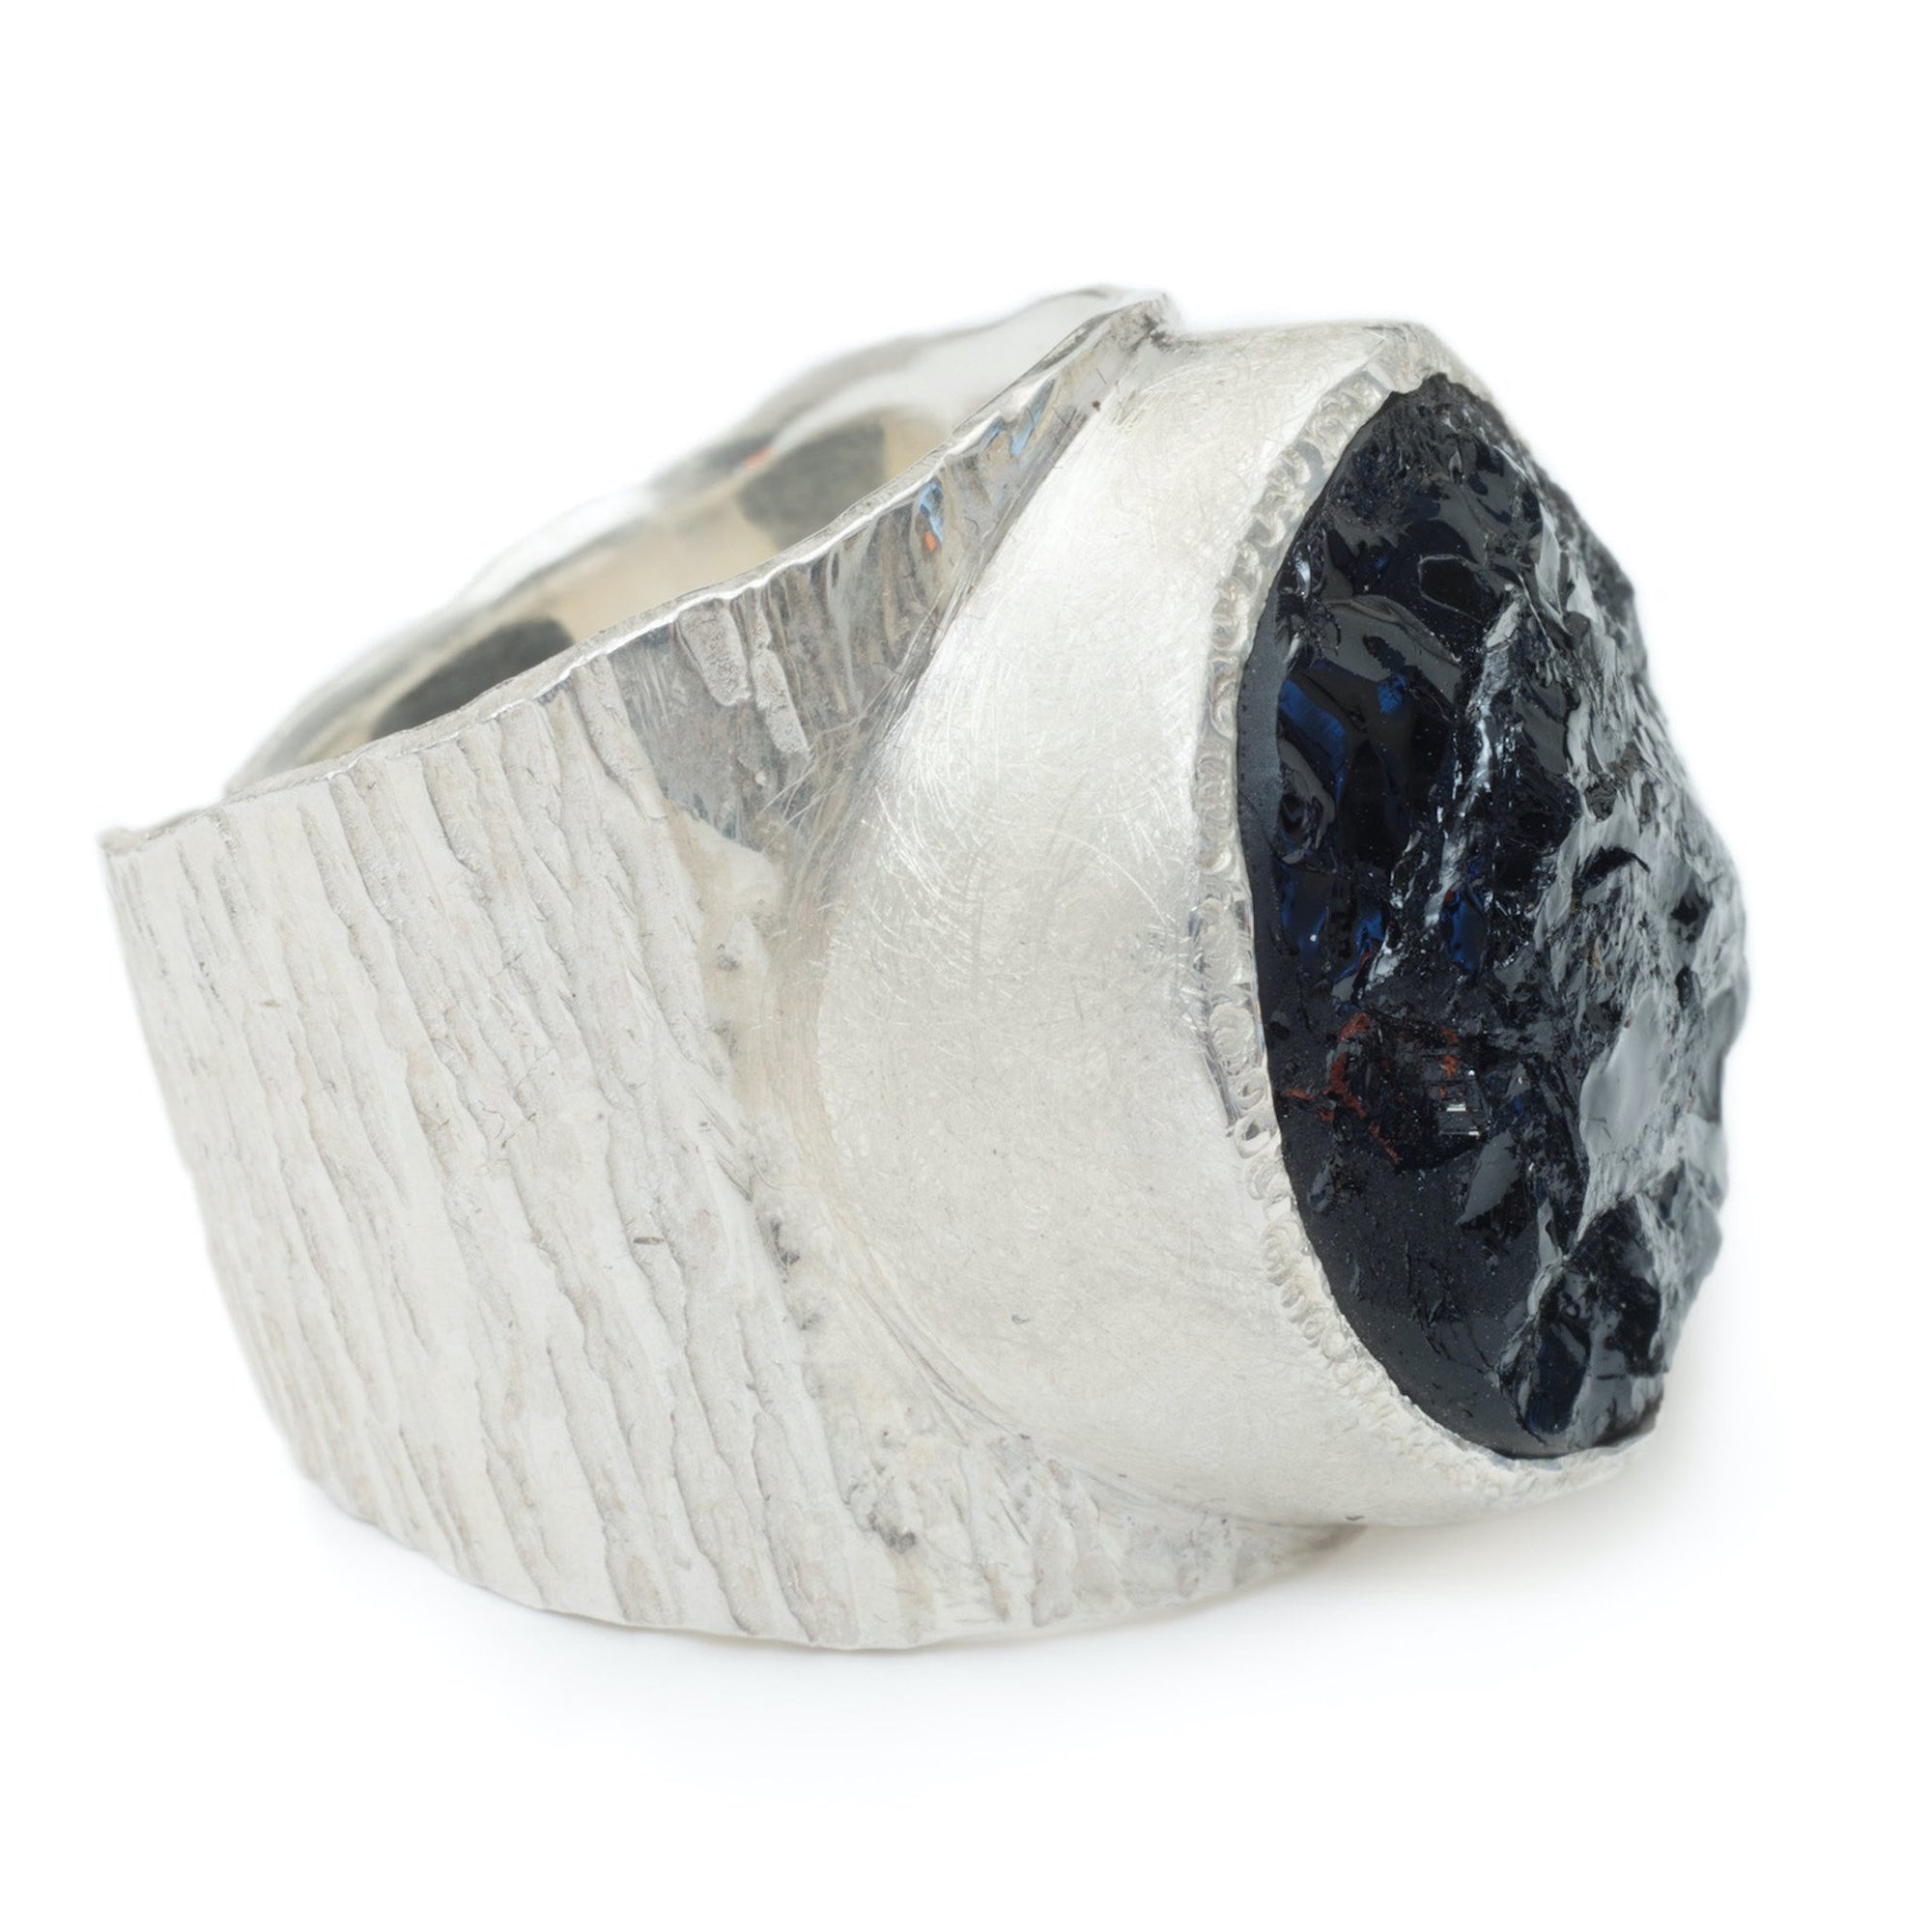 'Dark Horse' Black Tourmaline Macho Ring - Large Stone